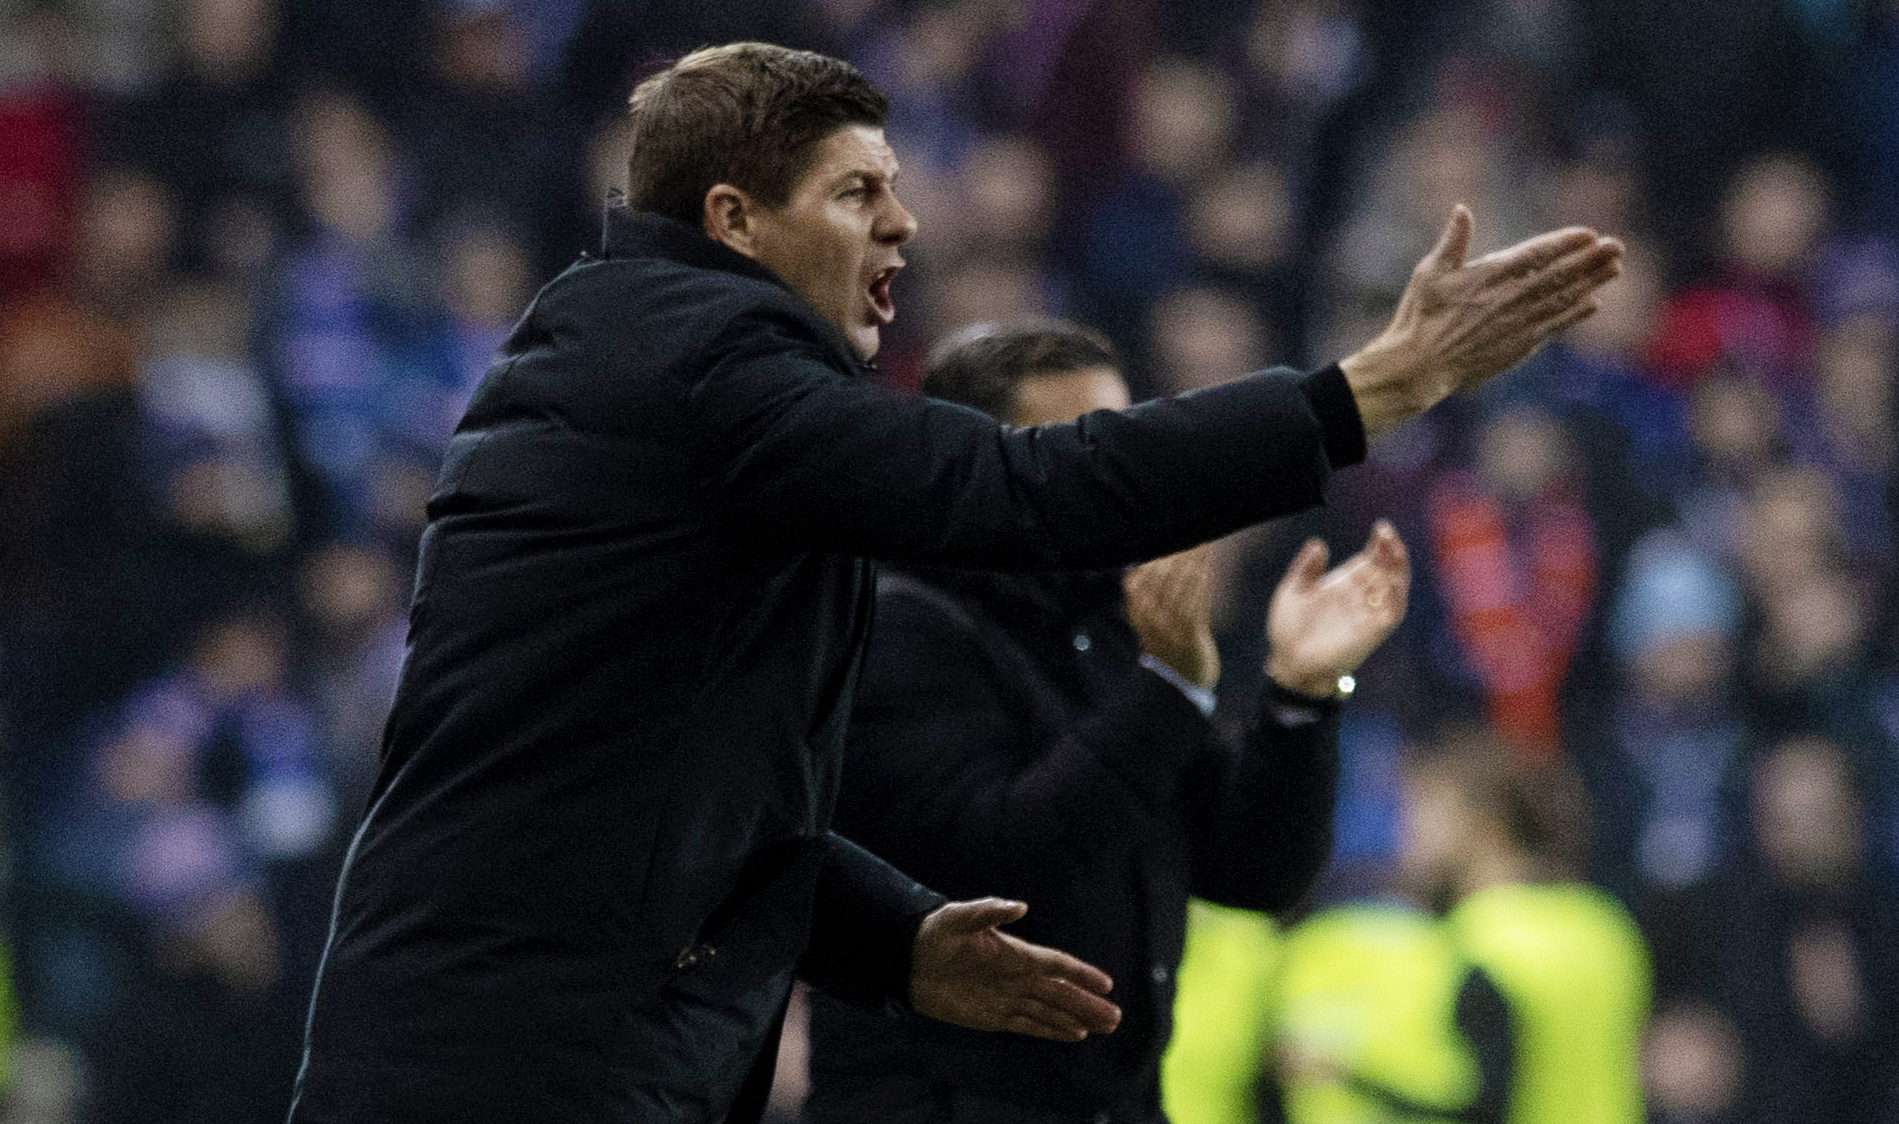 Rangers manager Steven Gerrard shouts instructions to his players (SNS Group / Craig Williamson)